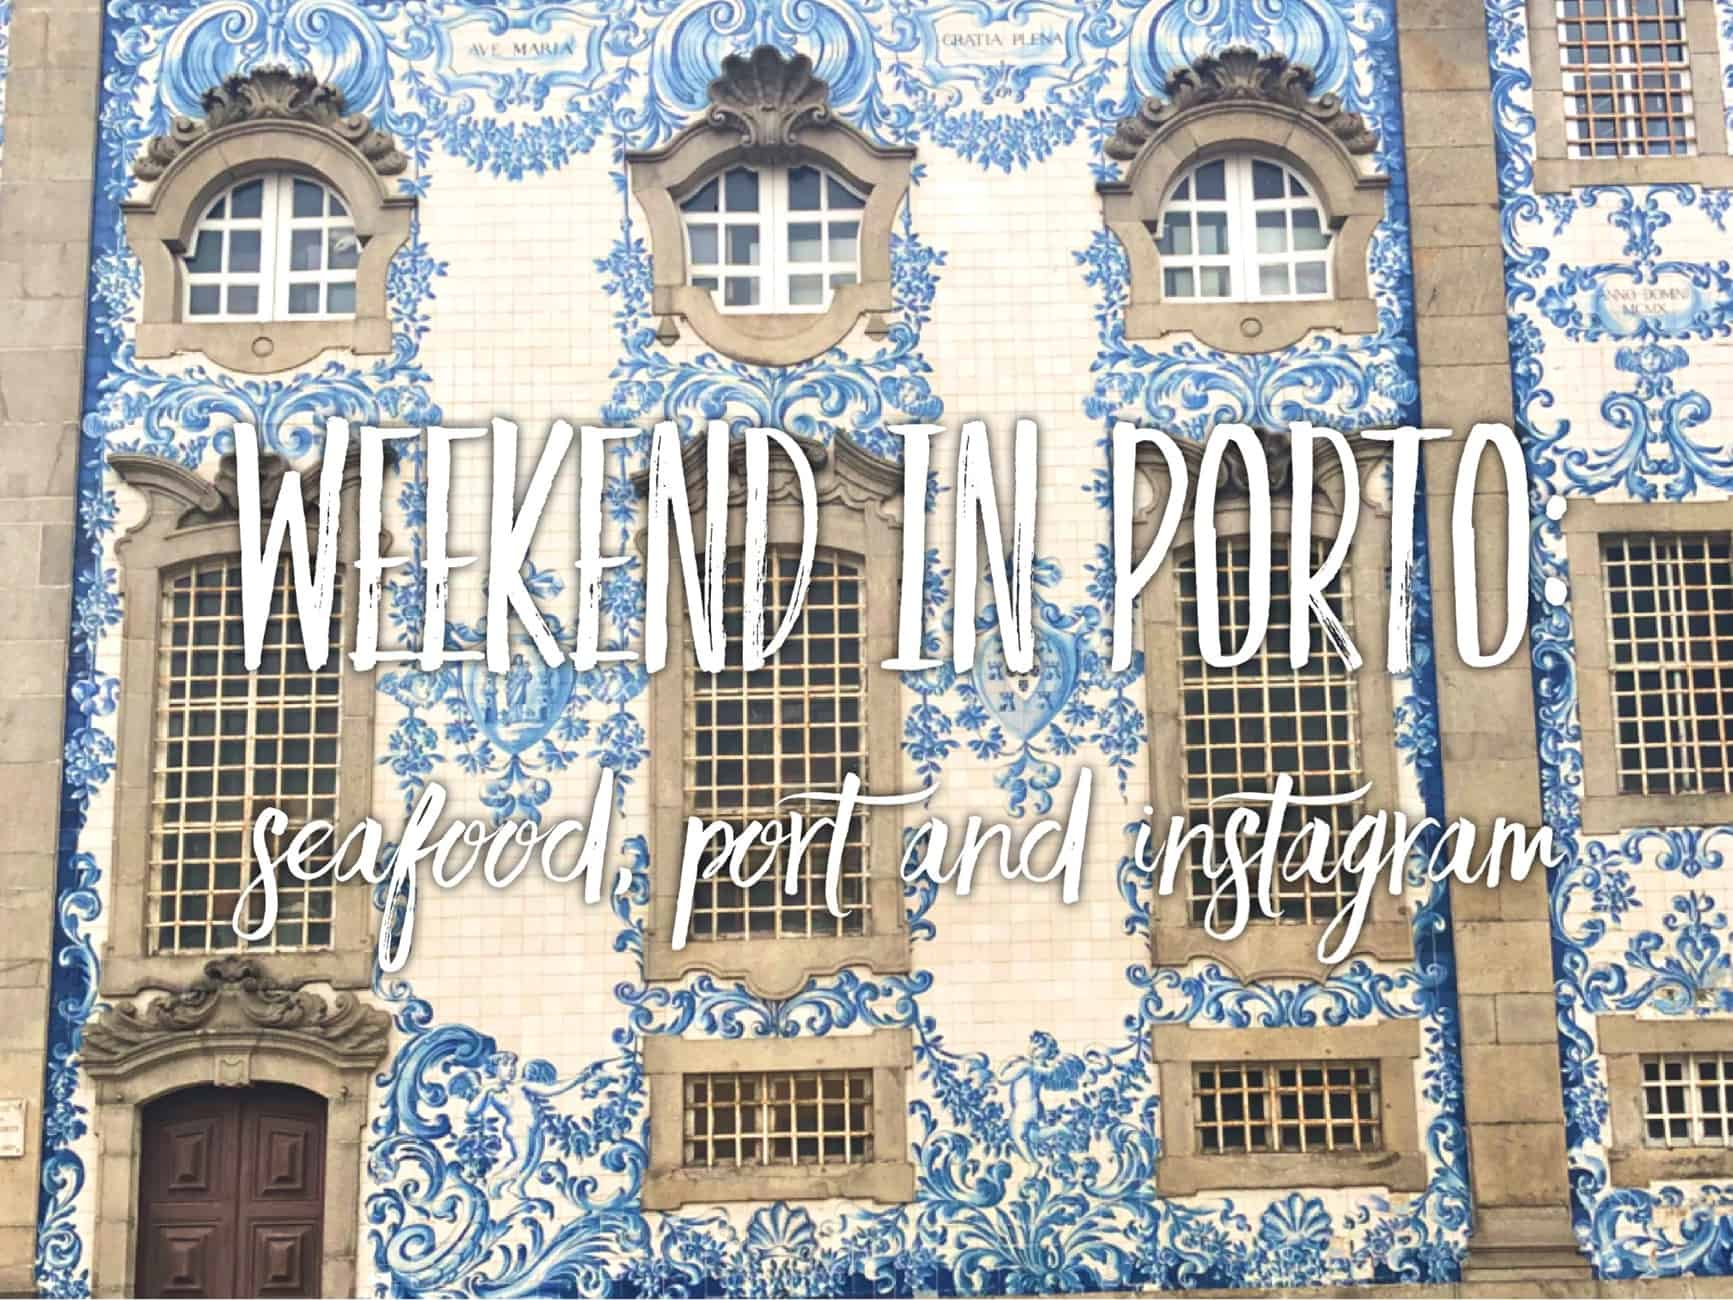 Weekend in Porto: port, seagulls and the most instagrammable places in Porto